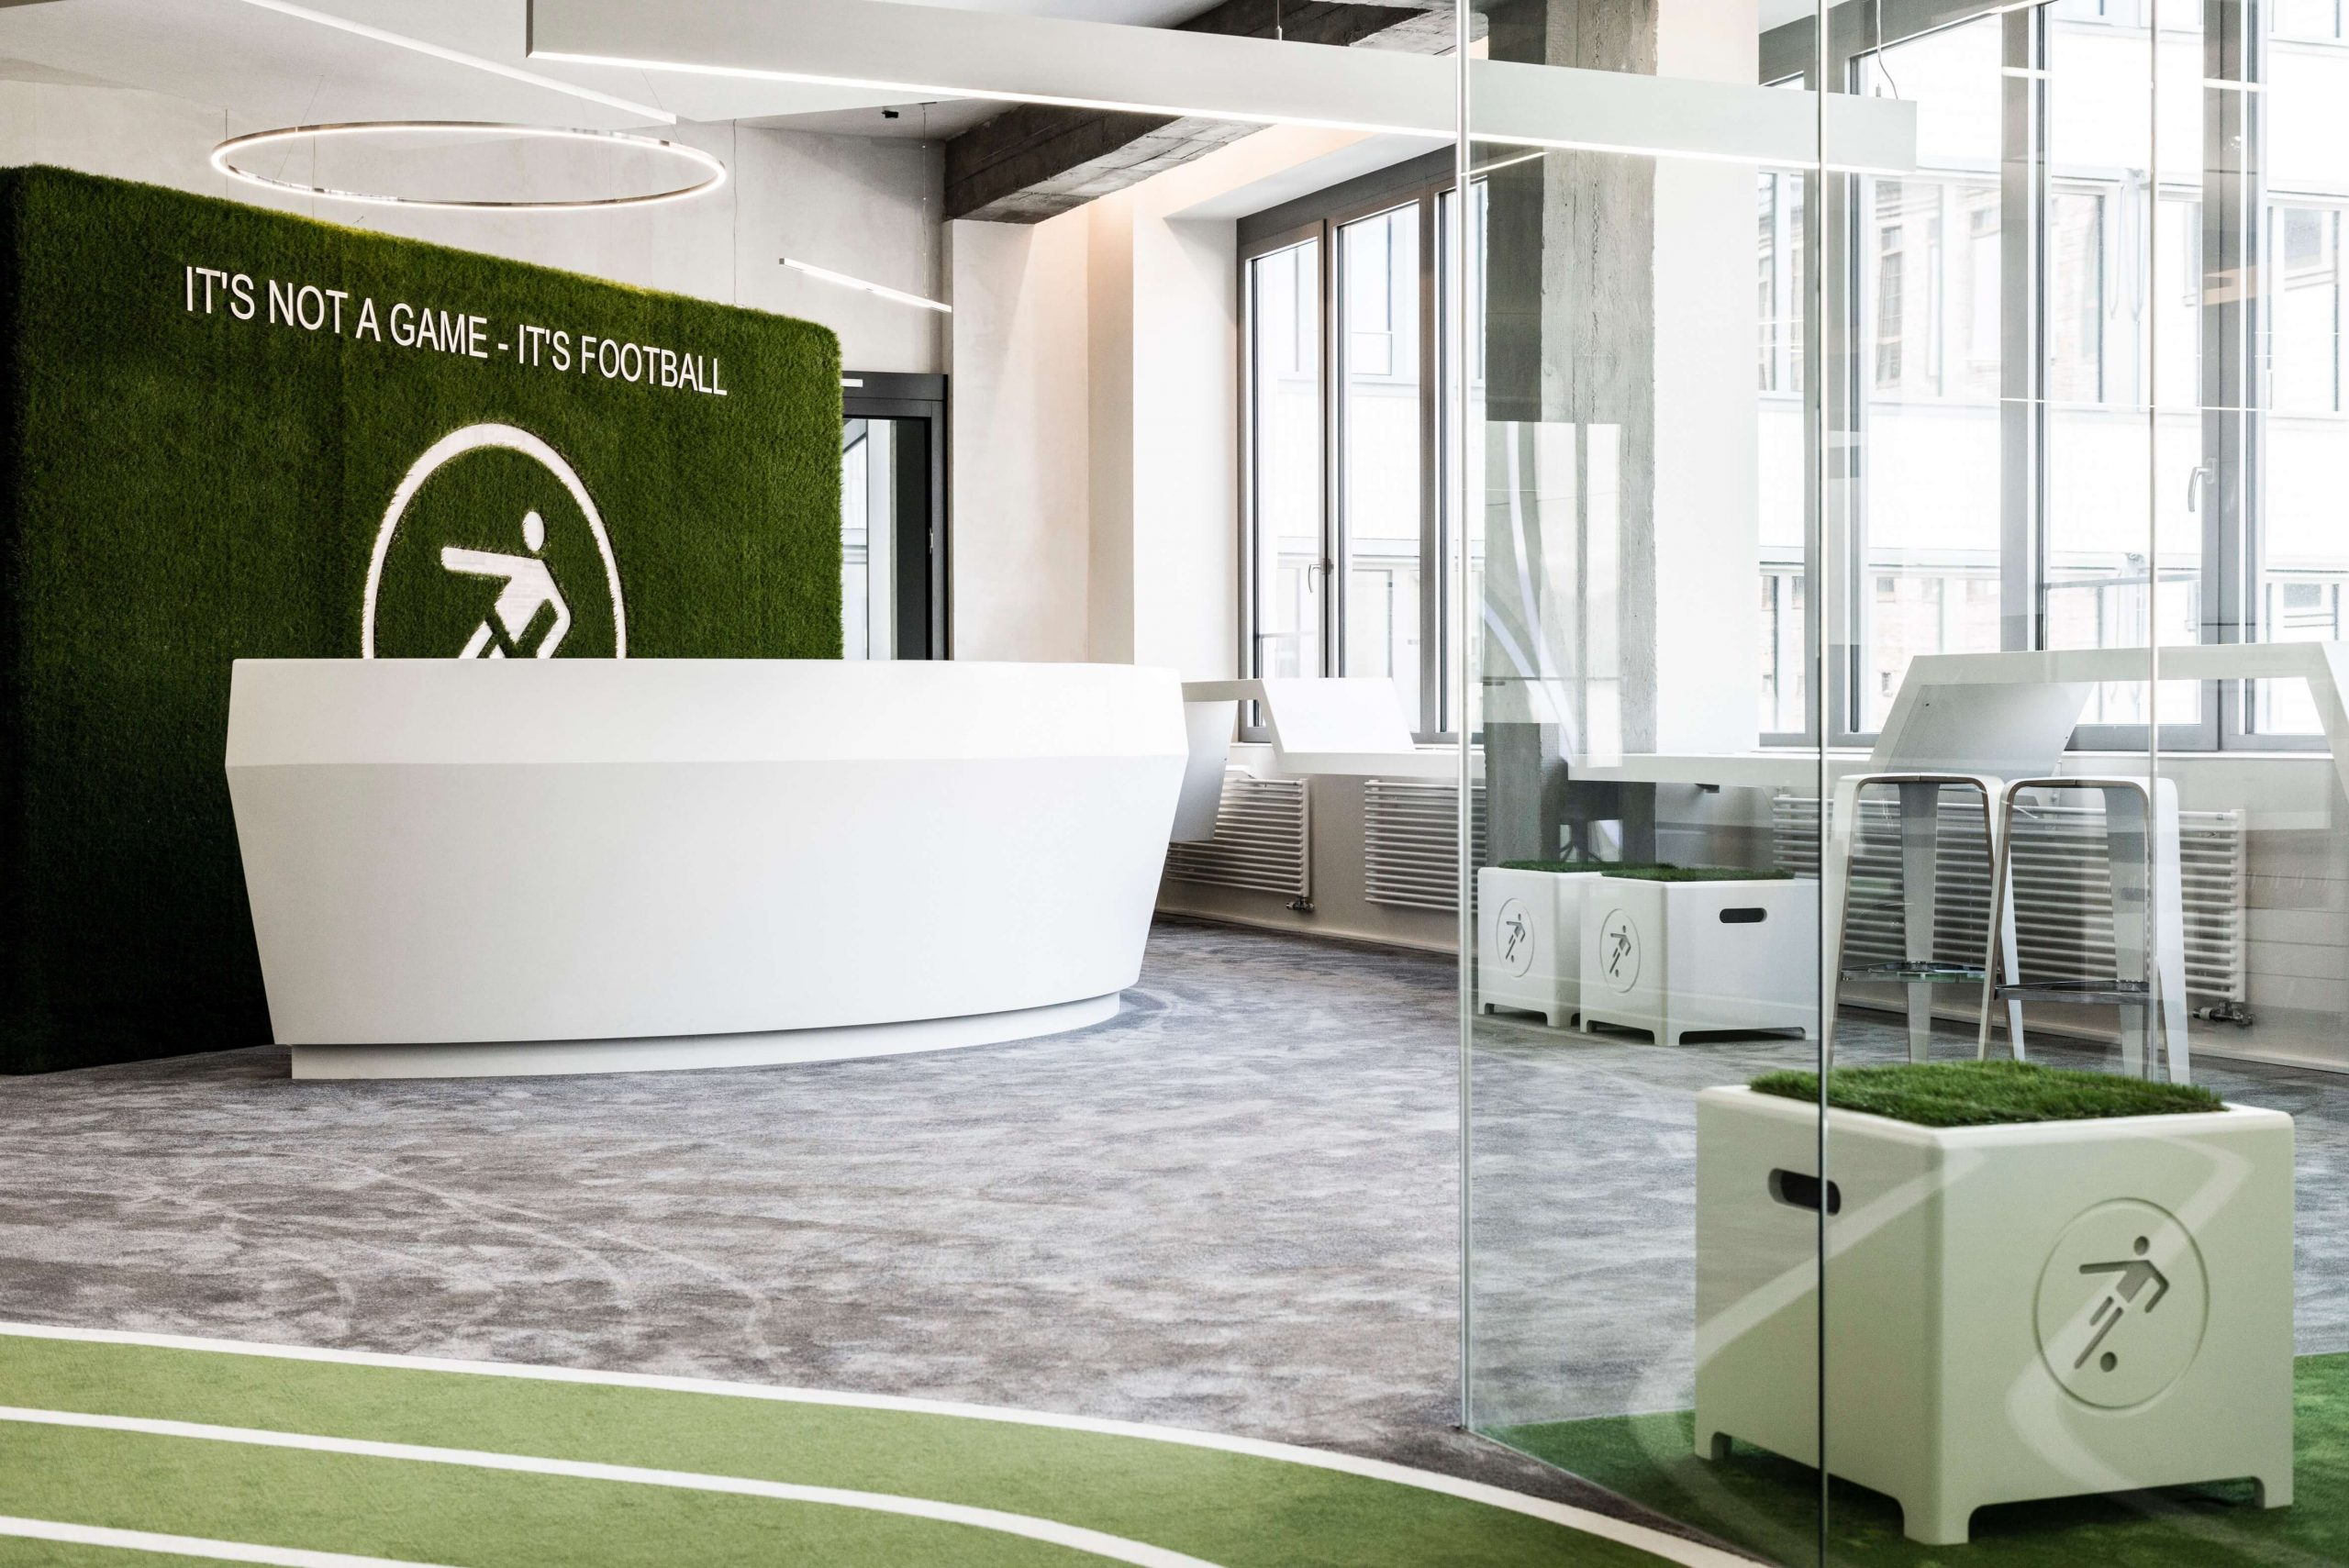 Startup Onefootball Office Design TKEZ Architekten It's not a game